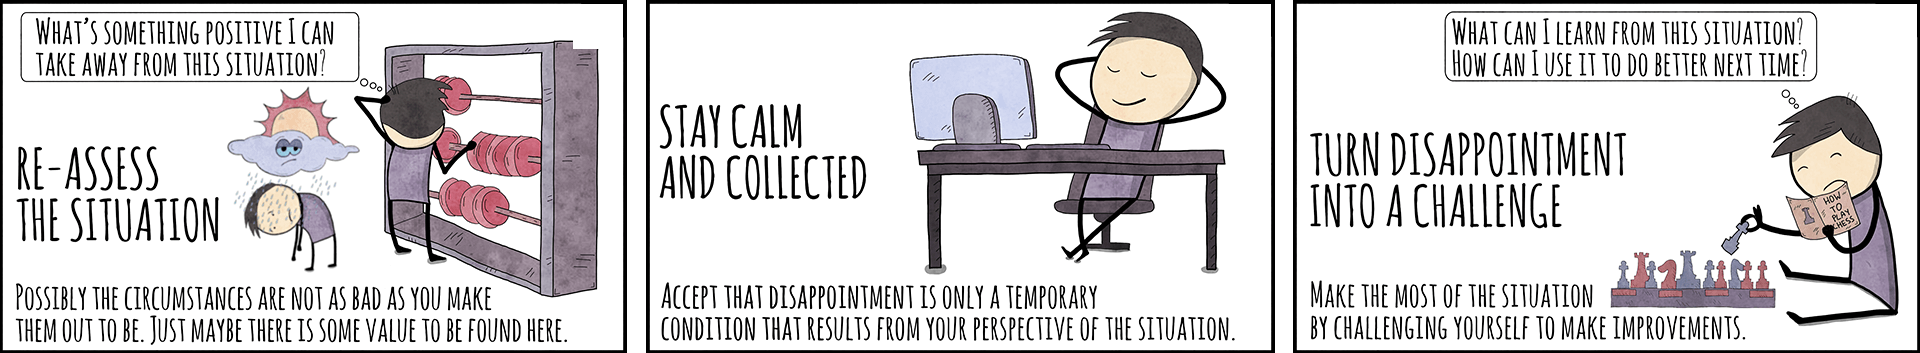 How to get over disappointment